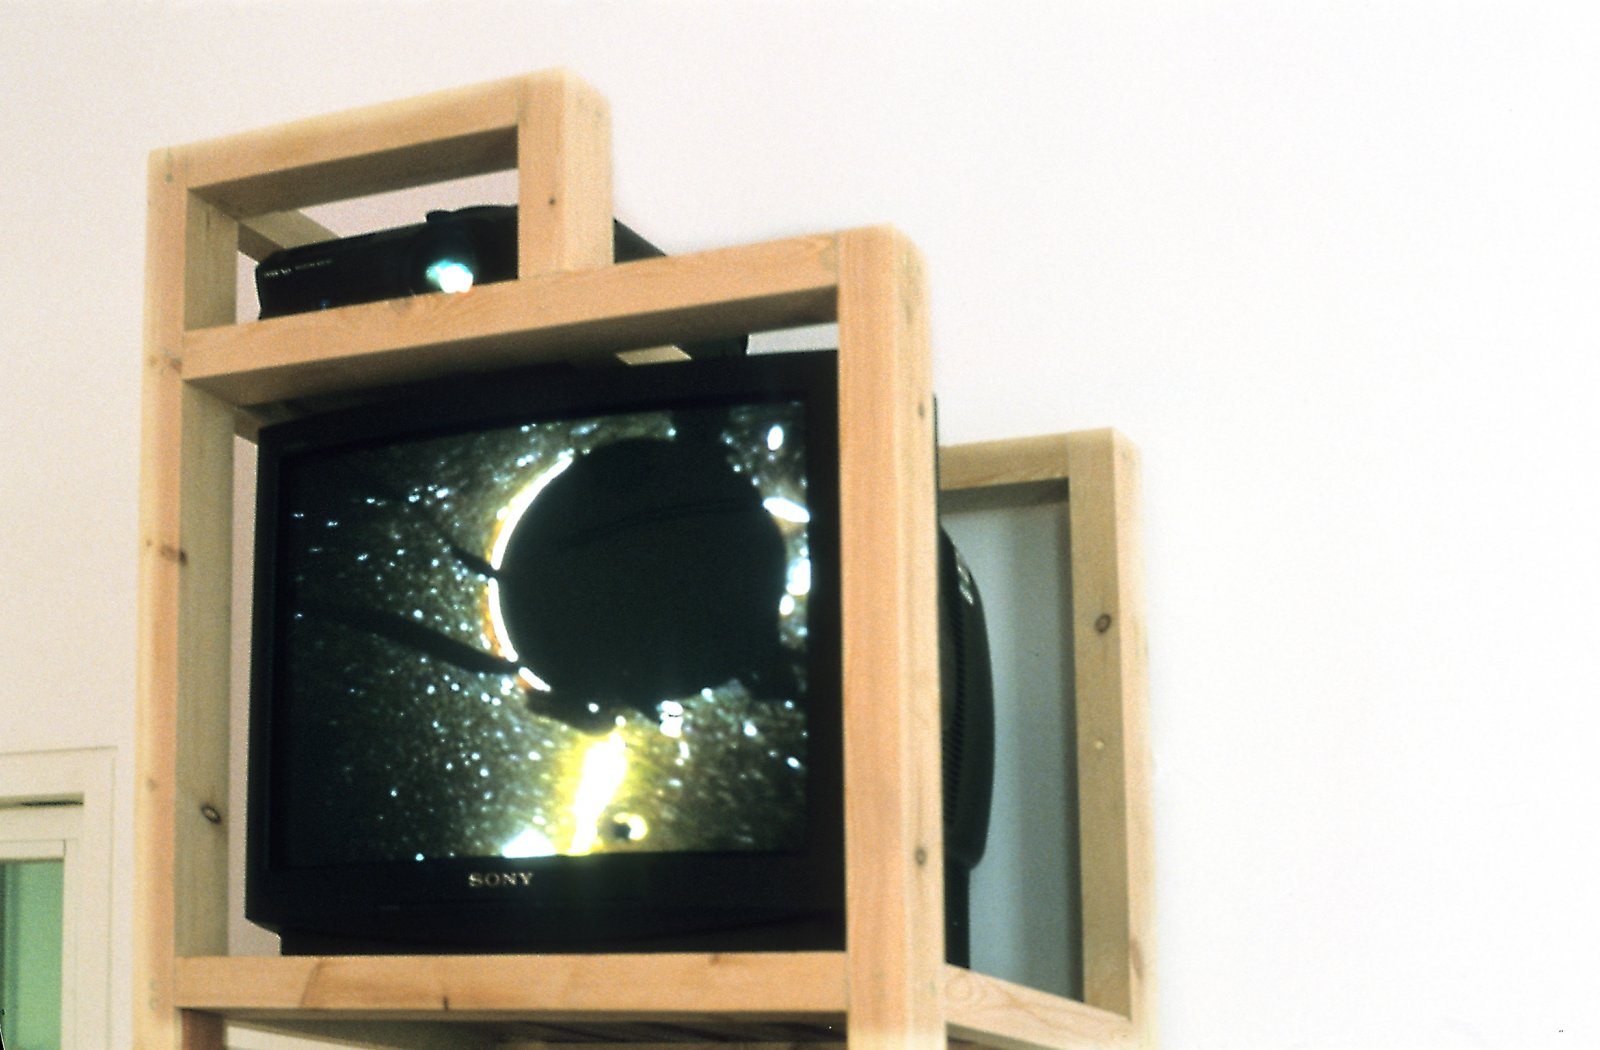 Christina Mackie, An Interzone/intertidalzone (detail), 2002–2012, mixed media, dimensions variable. Installation view, The Interzone, Henry Moore Institute, Leeds, UK, 2002 by Christina Mackie